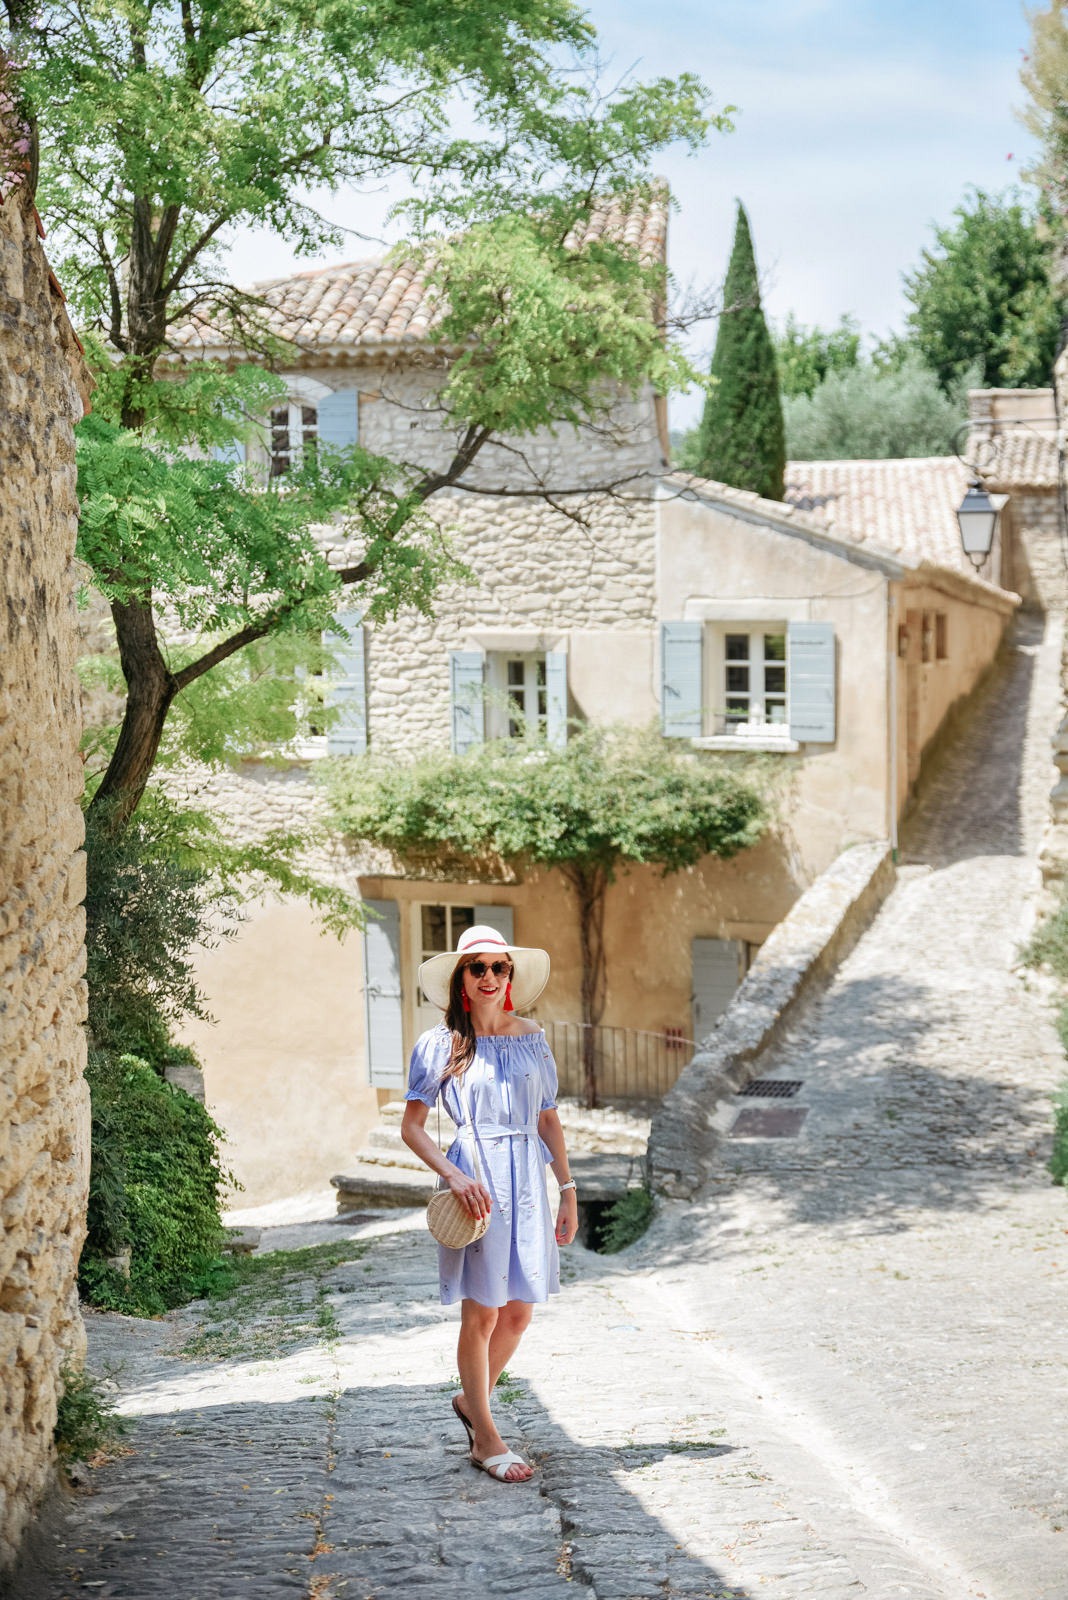 Blog-Mode-And-The-City-Lifestyle-Provence-Voyage-Gordes-17